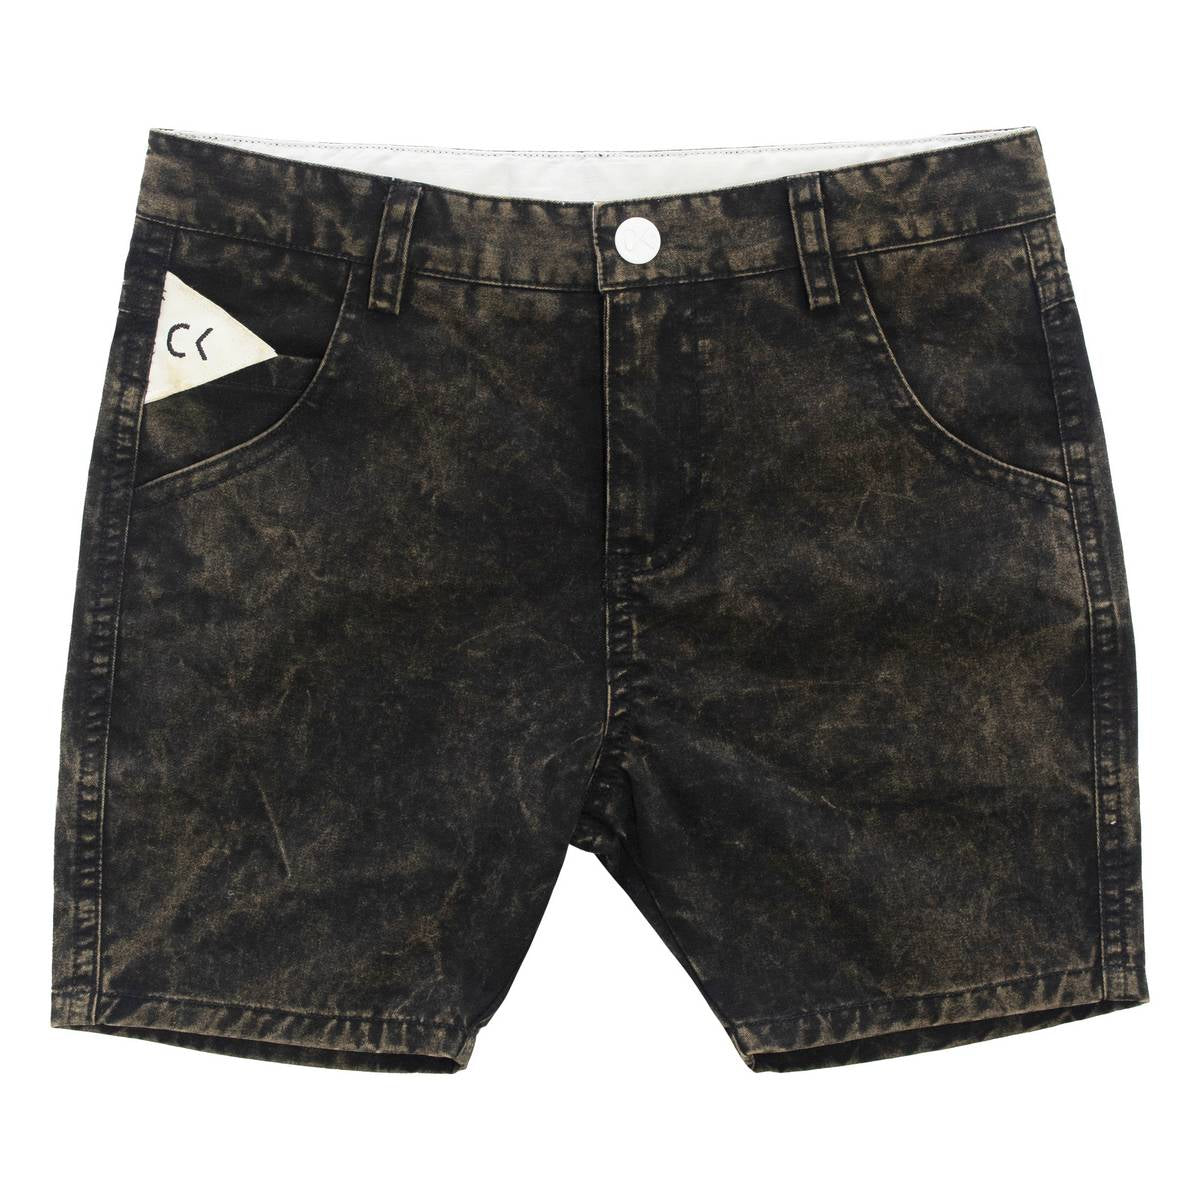 Crew Black Ombre Bleached Shorts